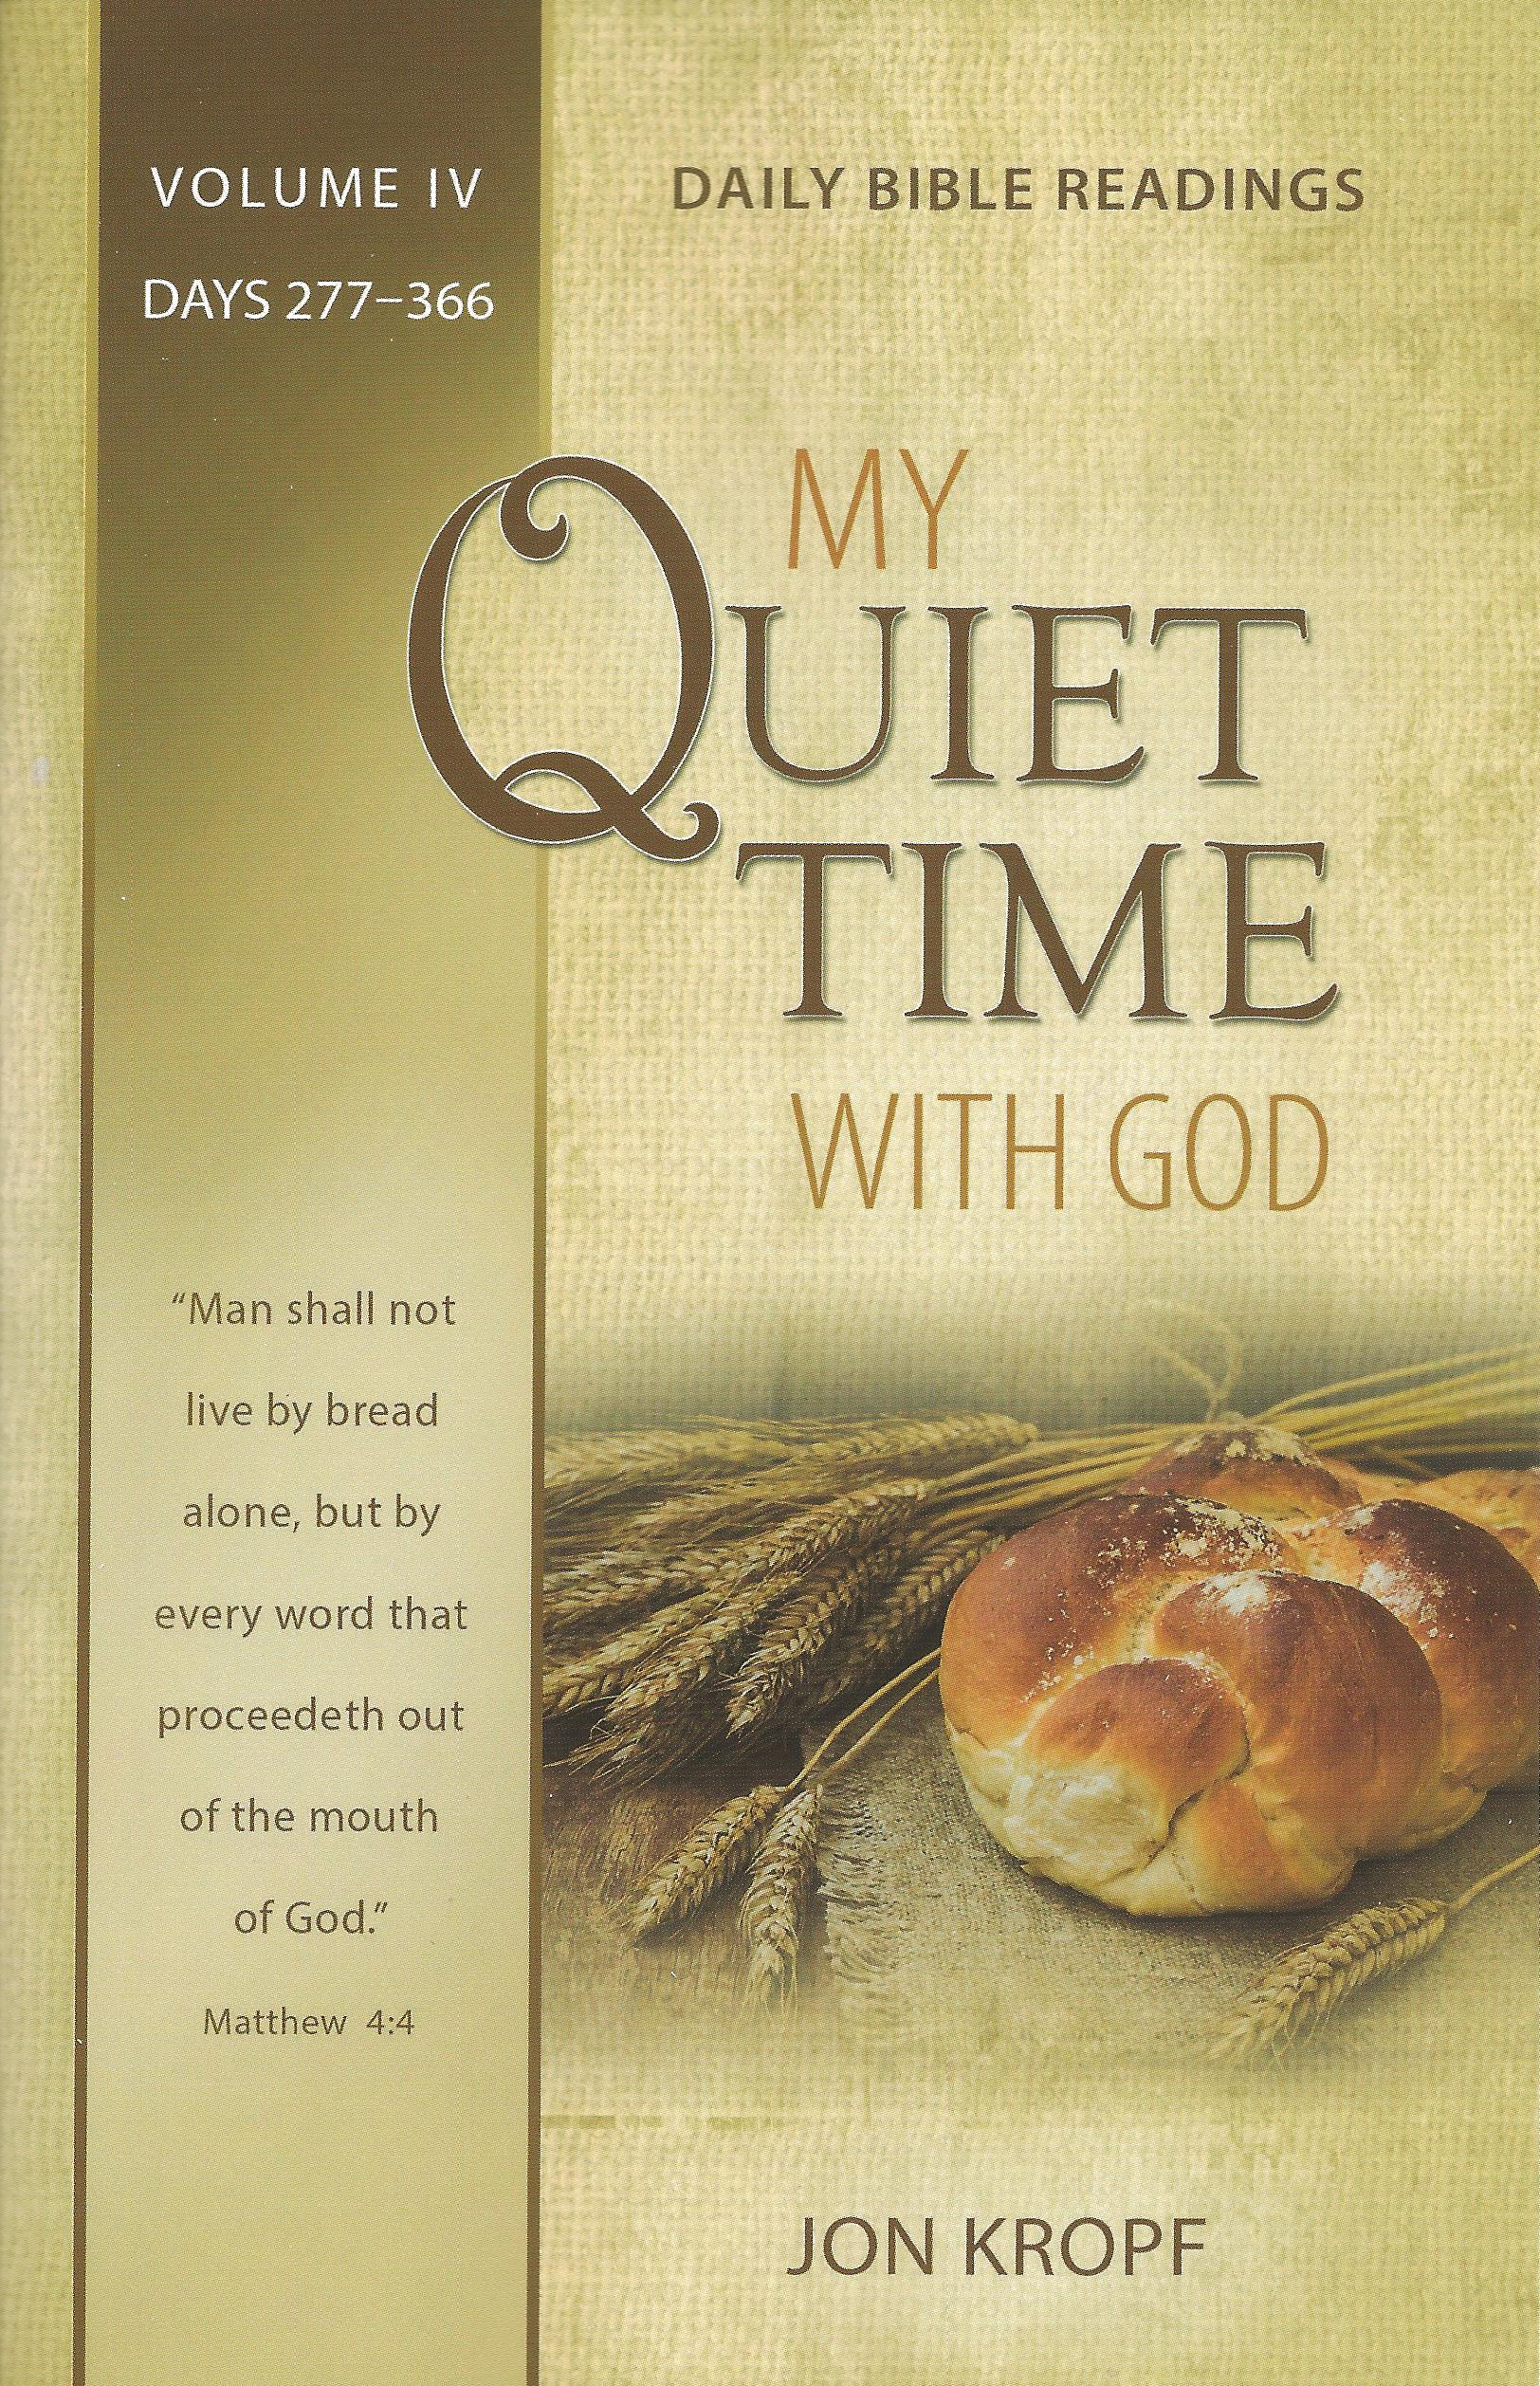 MY QUIET TIME WITH GOD VOL. IV Jon Kropf